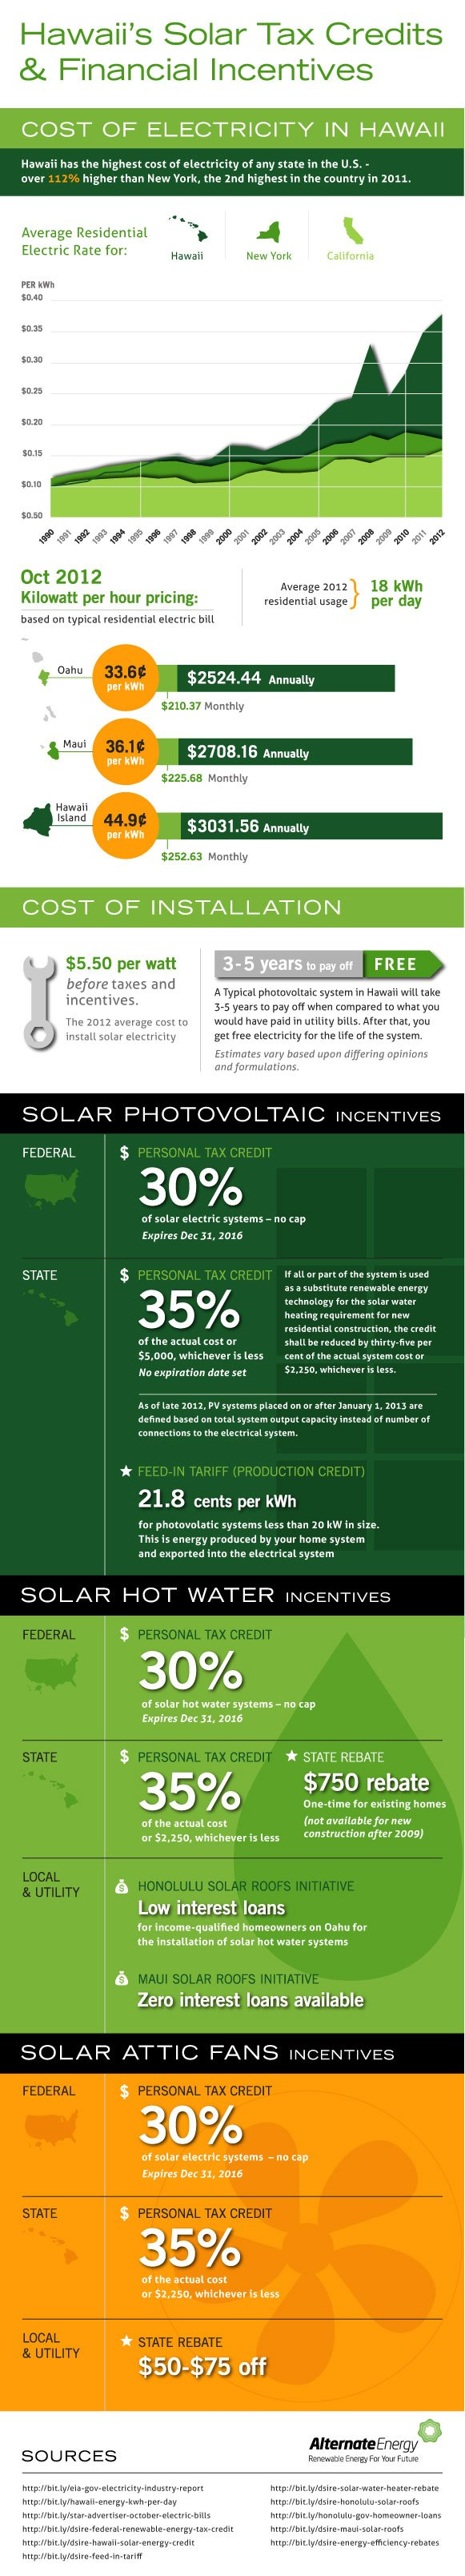 are solar panels worth it hawaii Are Solar Panels Worth It In Hawaii? (Infographic)